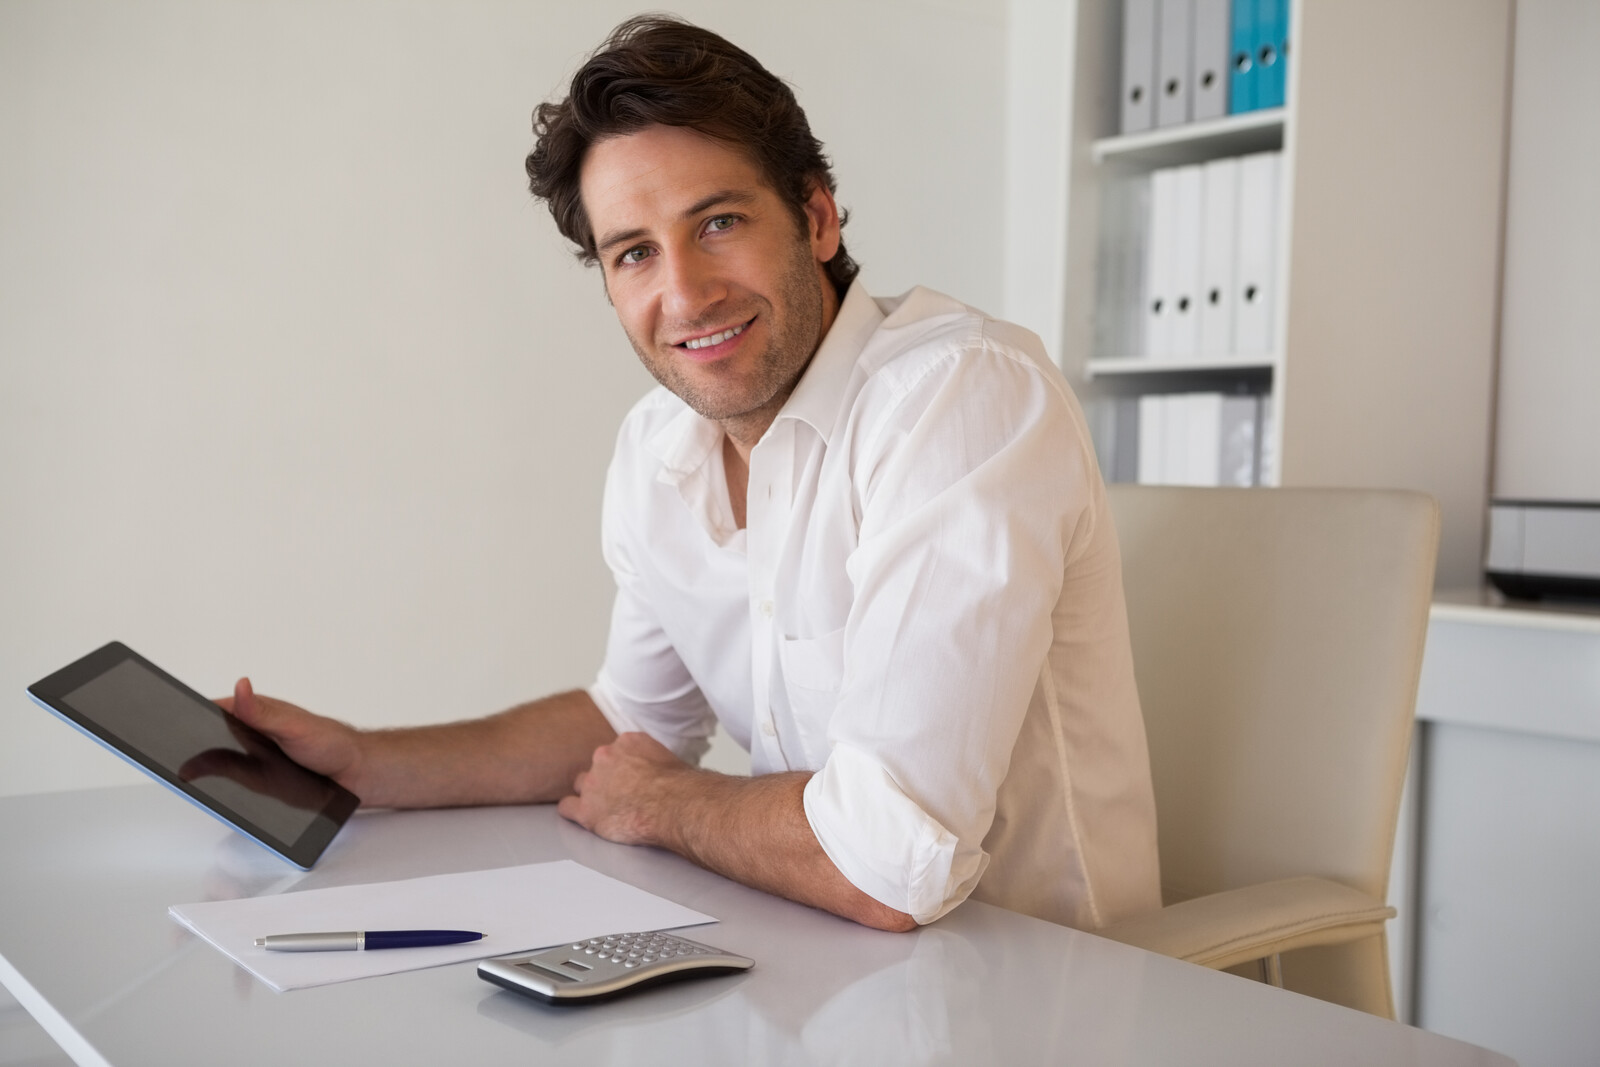 A man smiling while using his Ipad